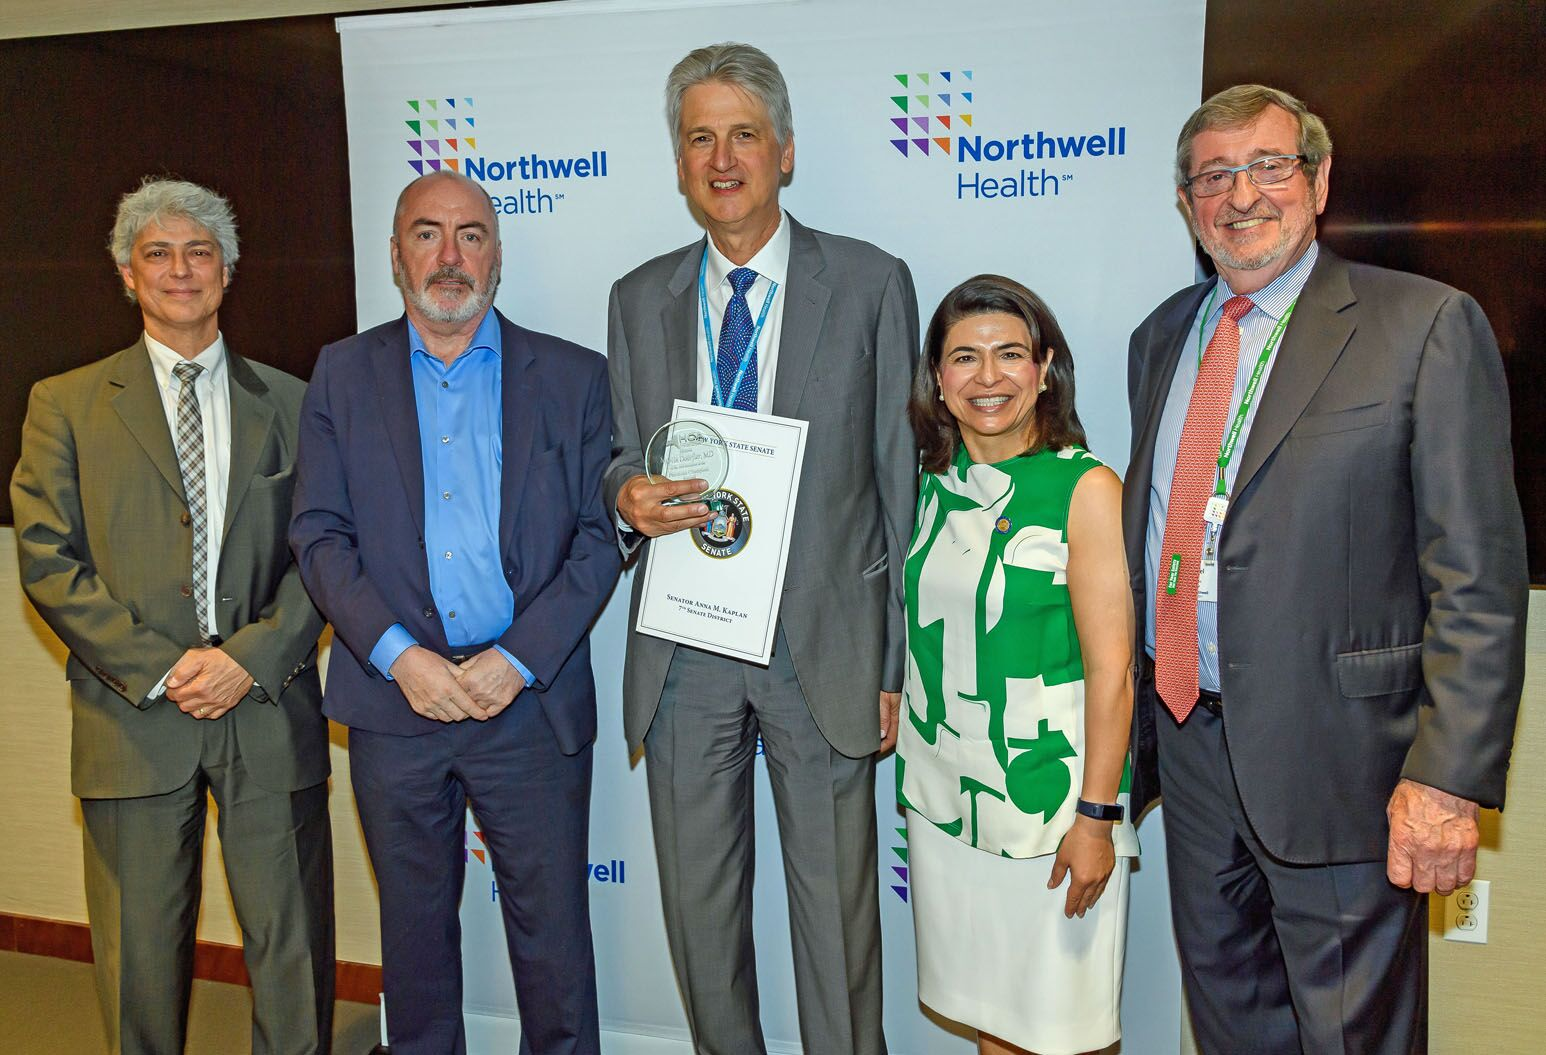 Standing in front of a Northwell backdrop (left to right): Al Cardillo, HCA president and CEO, Ciaran Staunton, Martin Doerfler, MD, Sen. Anna Kaplan and Northwell President and CEO Michael Dowling